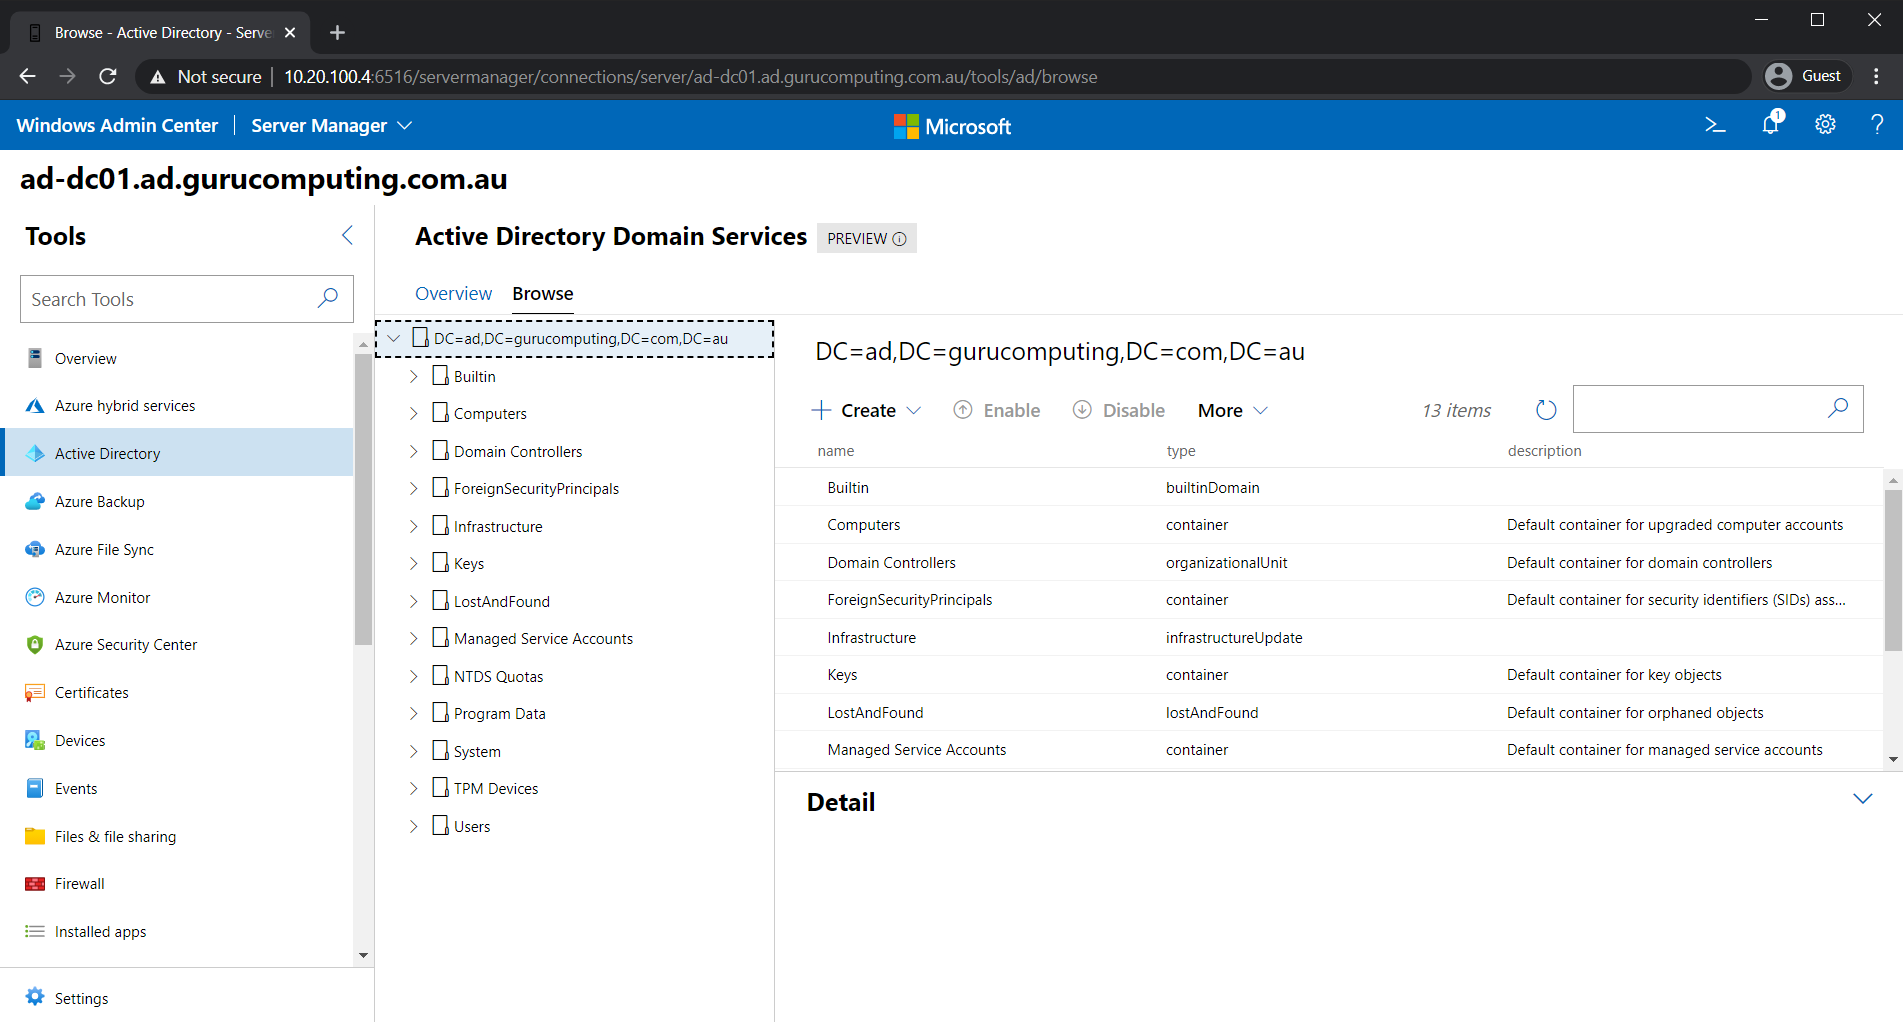 Browsing OUs in the Active Directory Extension